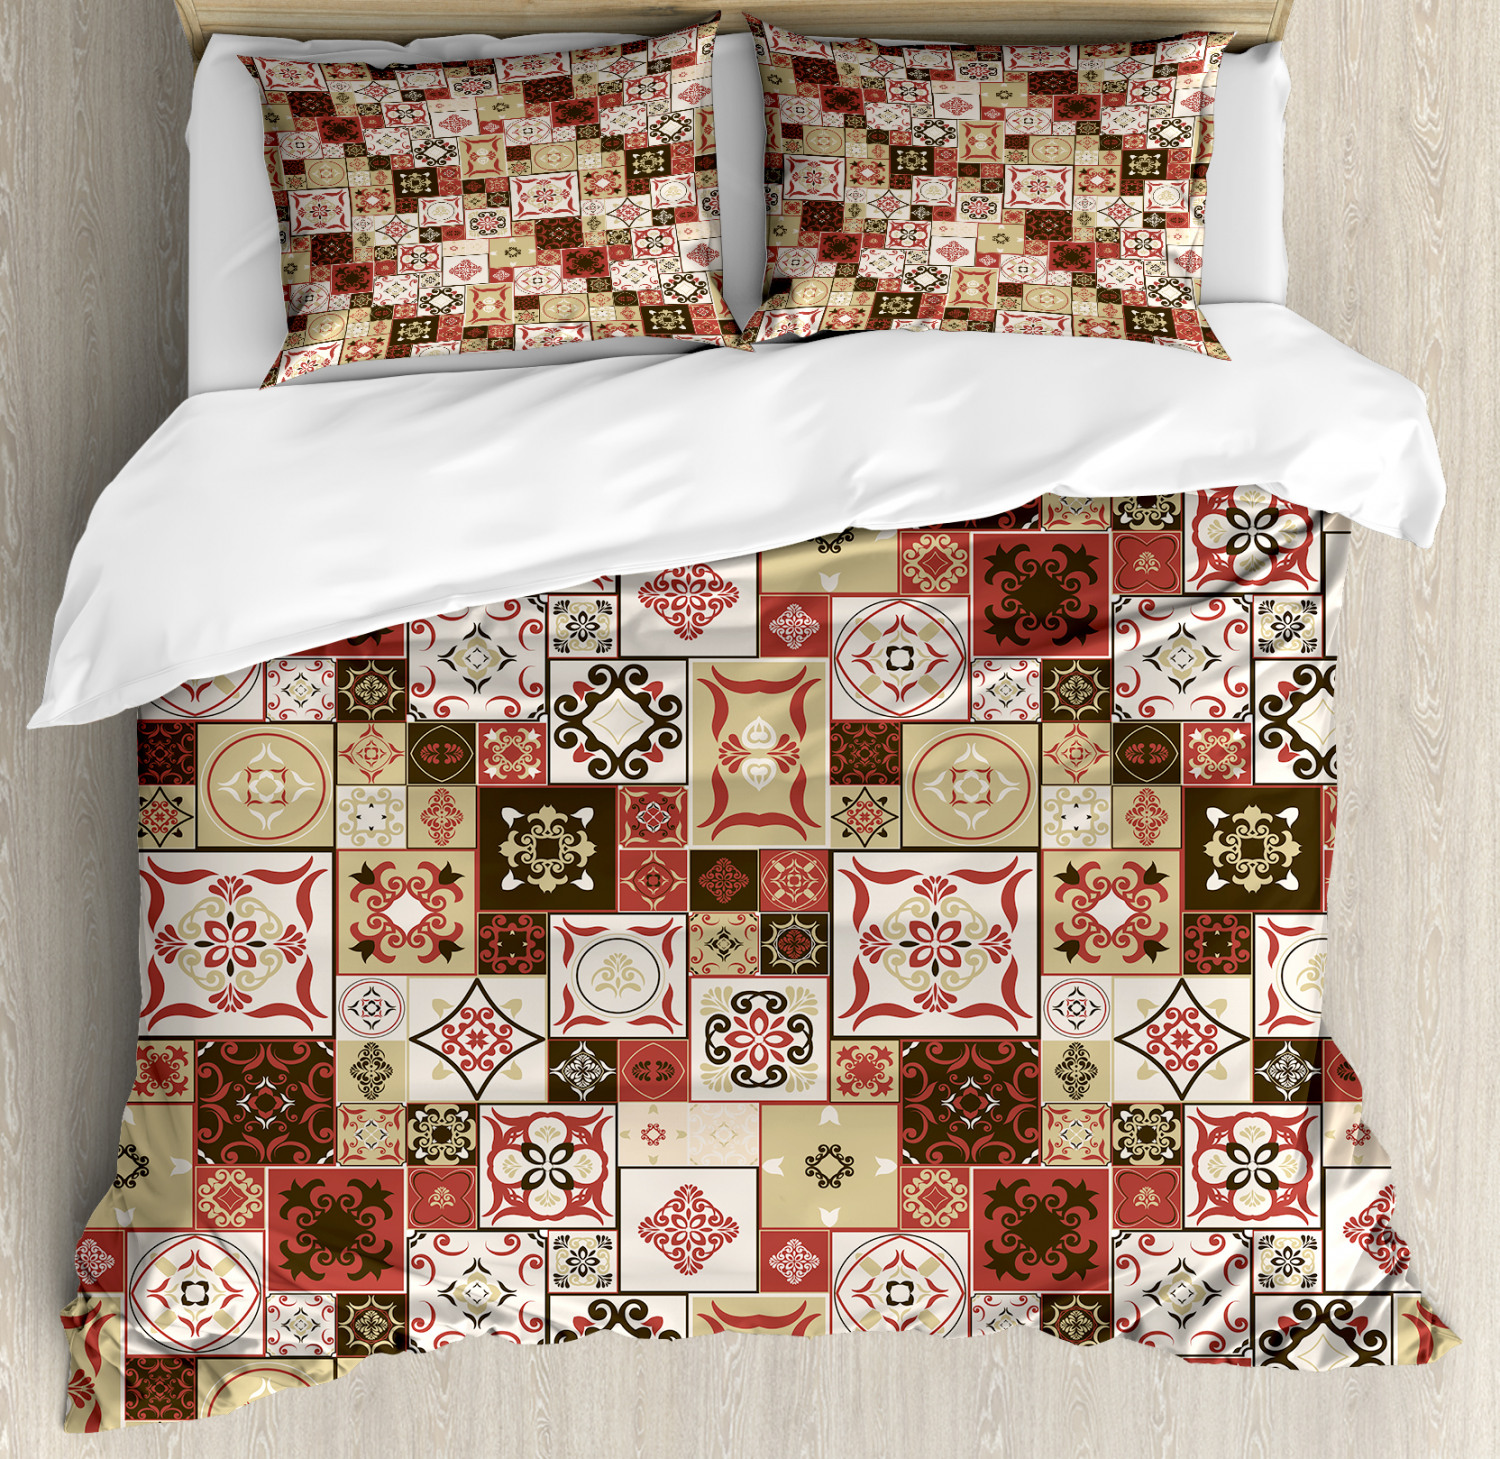 Mgoldccan Duvet Cover Set with Pillow Shams Vintage Square Pattern Print